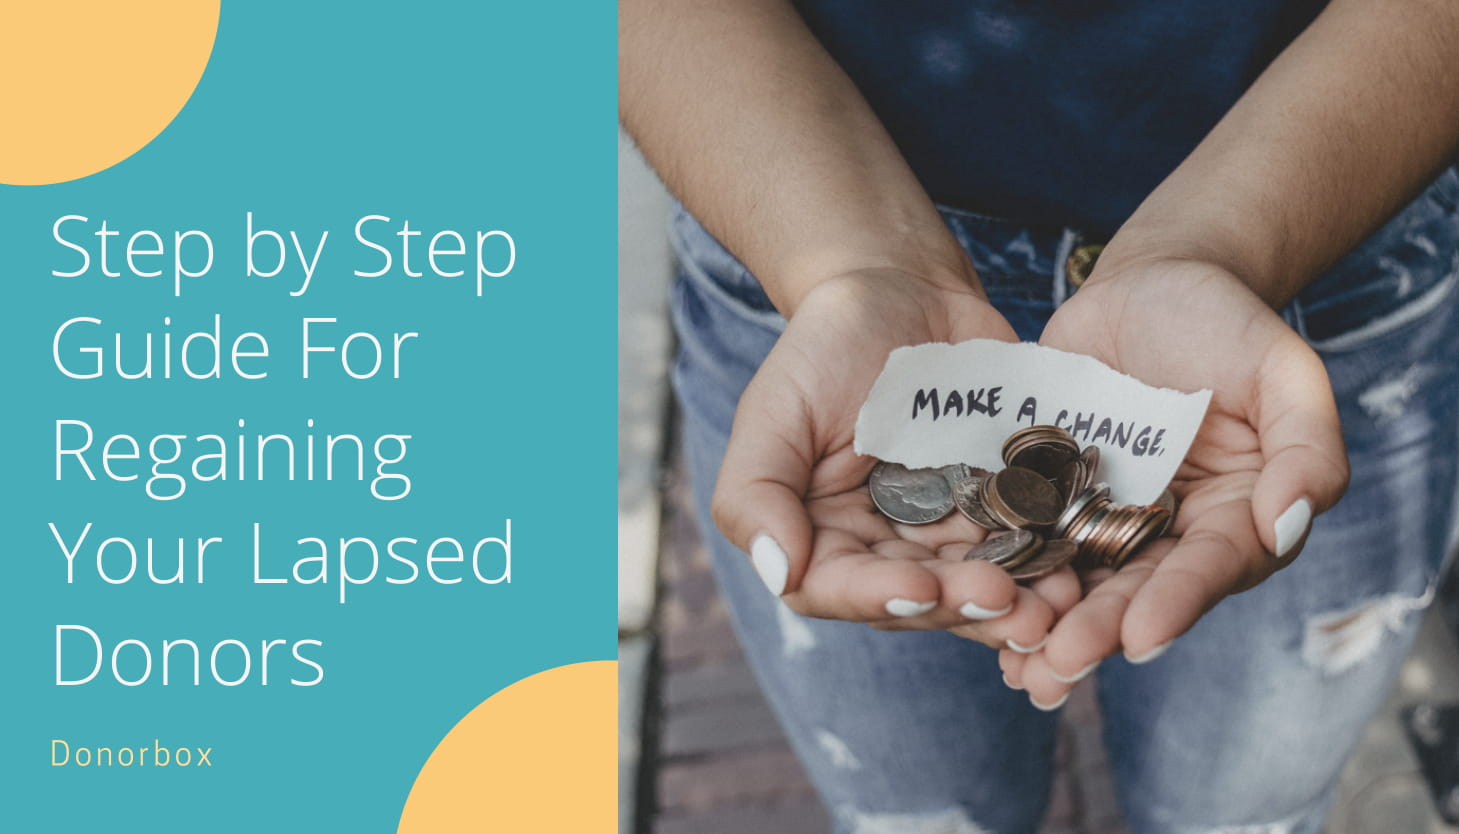 Step by Step Guide For Regaining Your Lapsed Donors